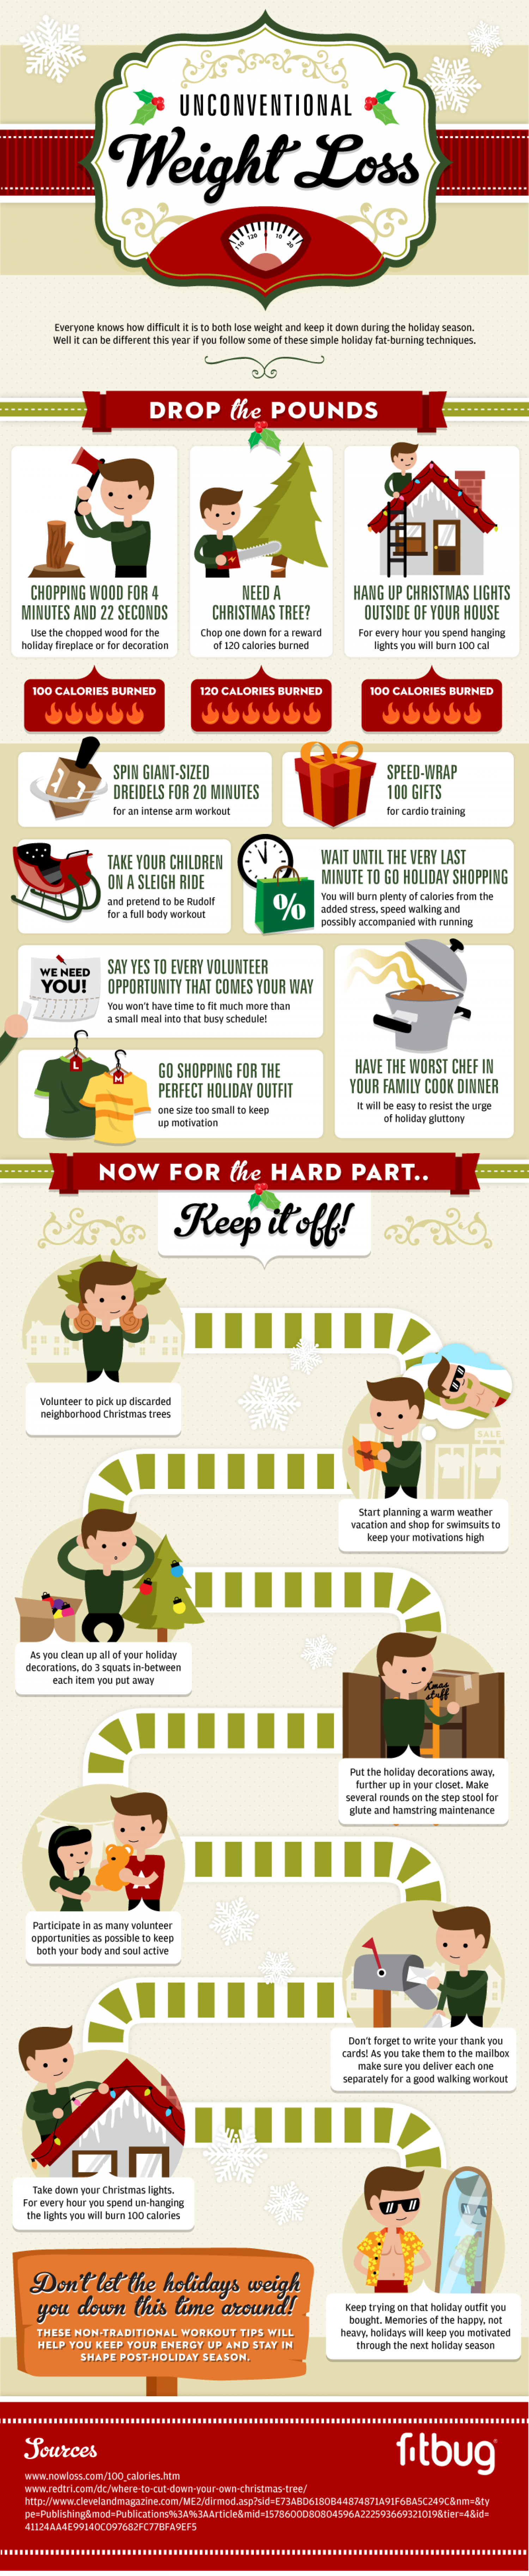 Unconventional Weight Loss Infographic